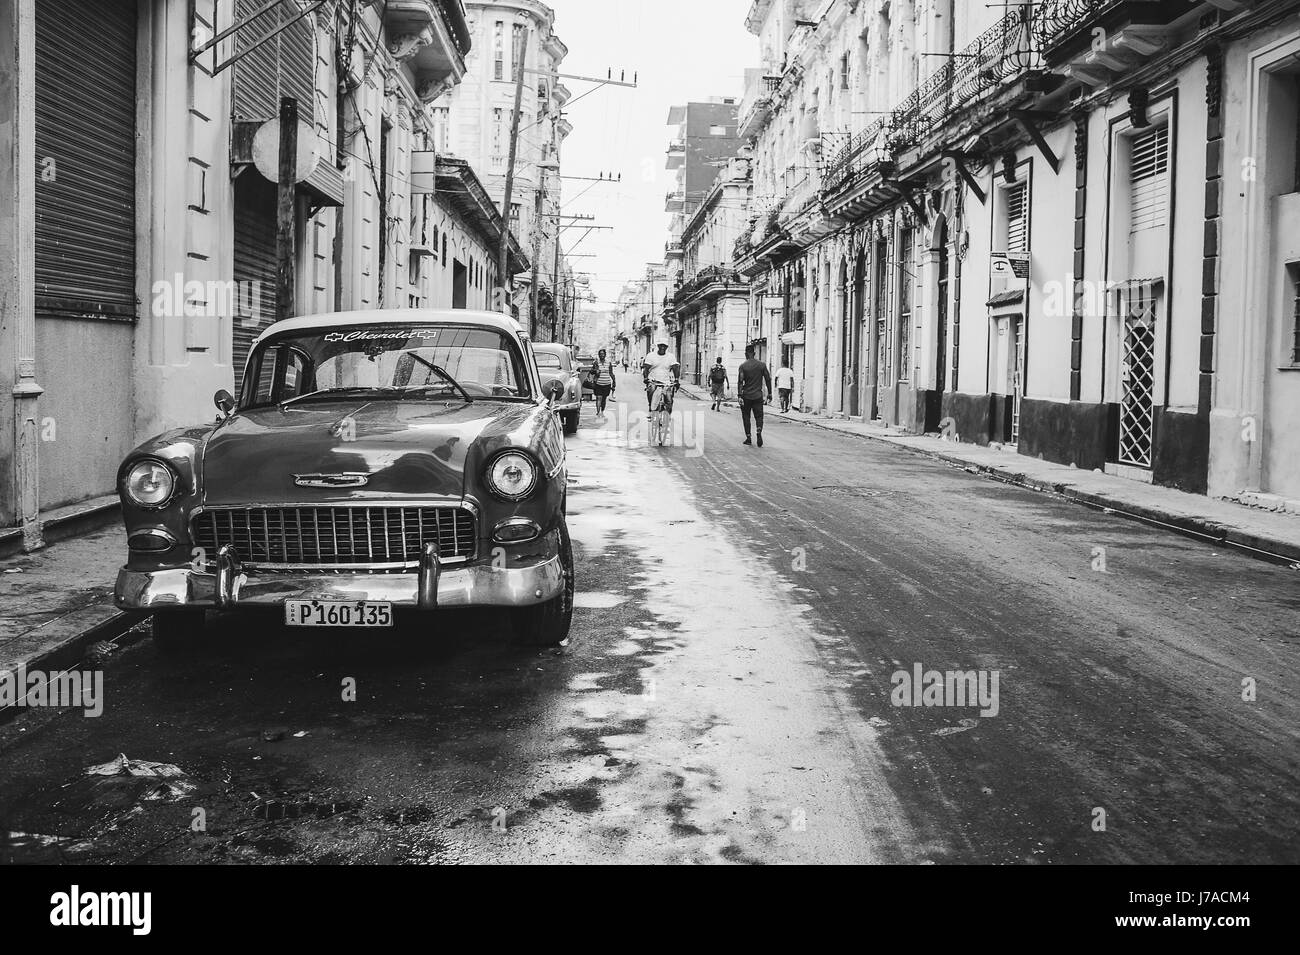 Old buildings and classic car parked on the street of Old Havana, Cuba. Monochrome - Stock Image